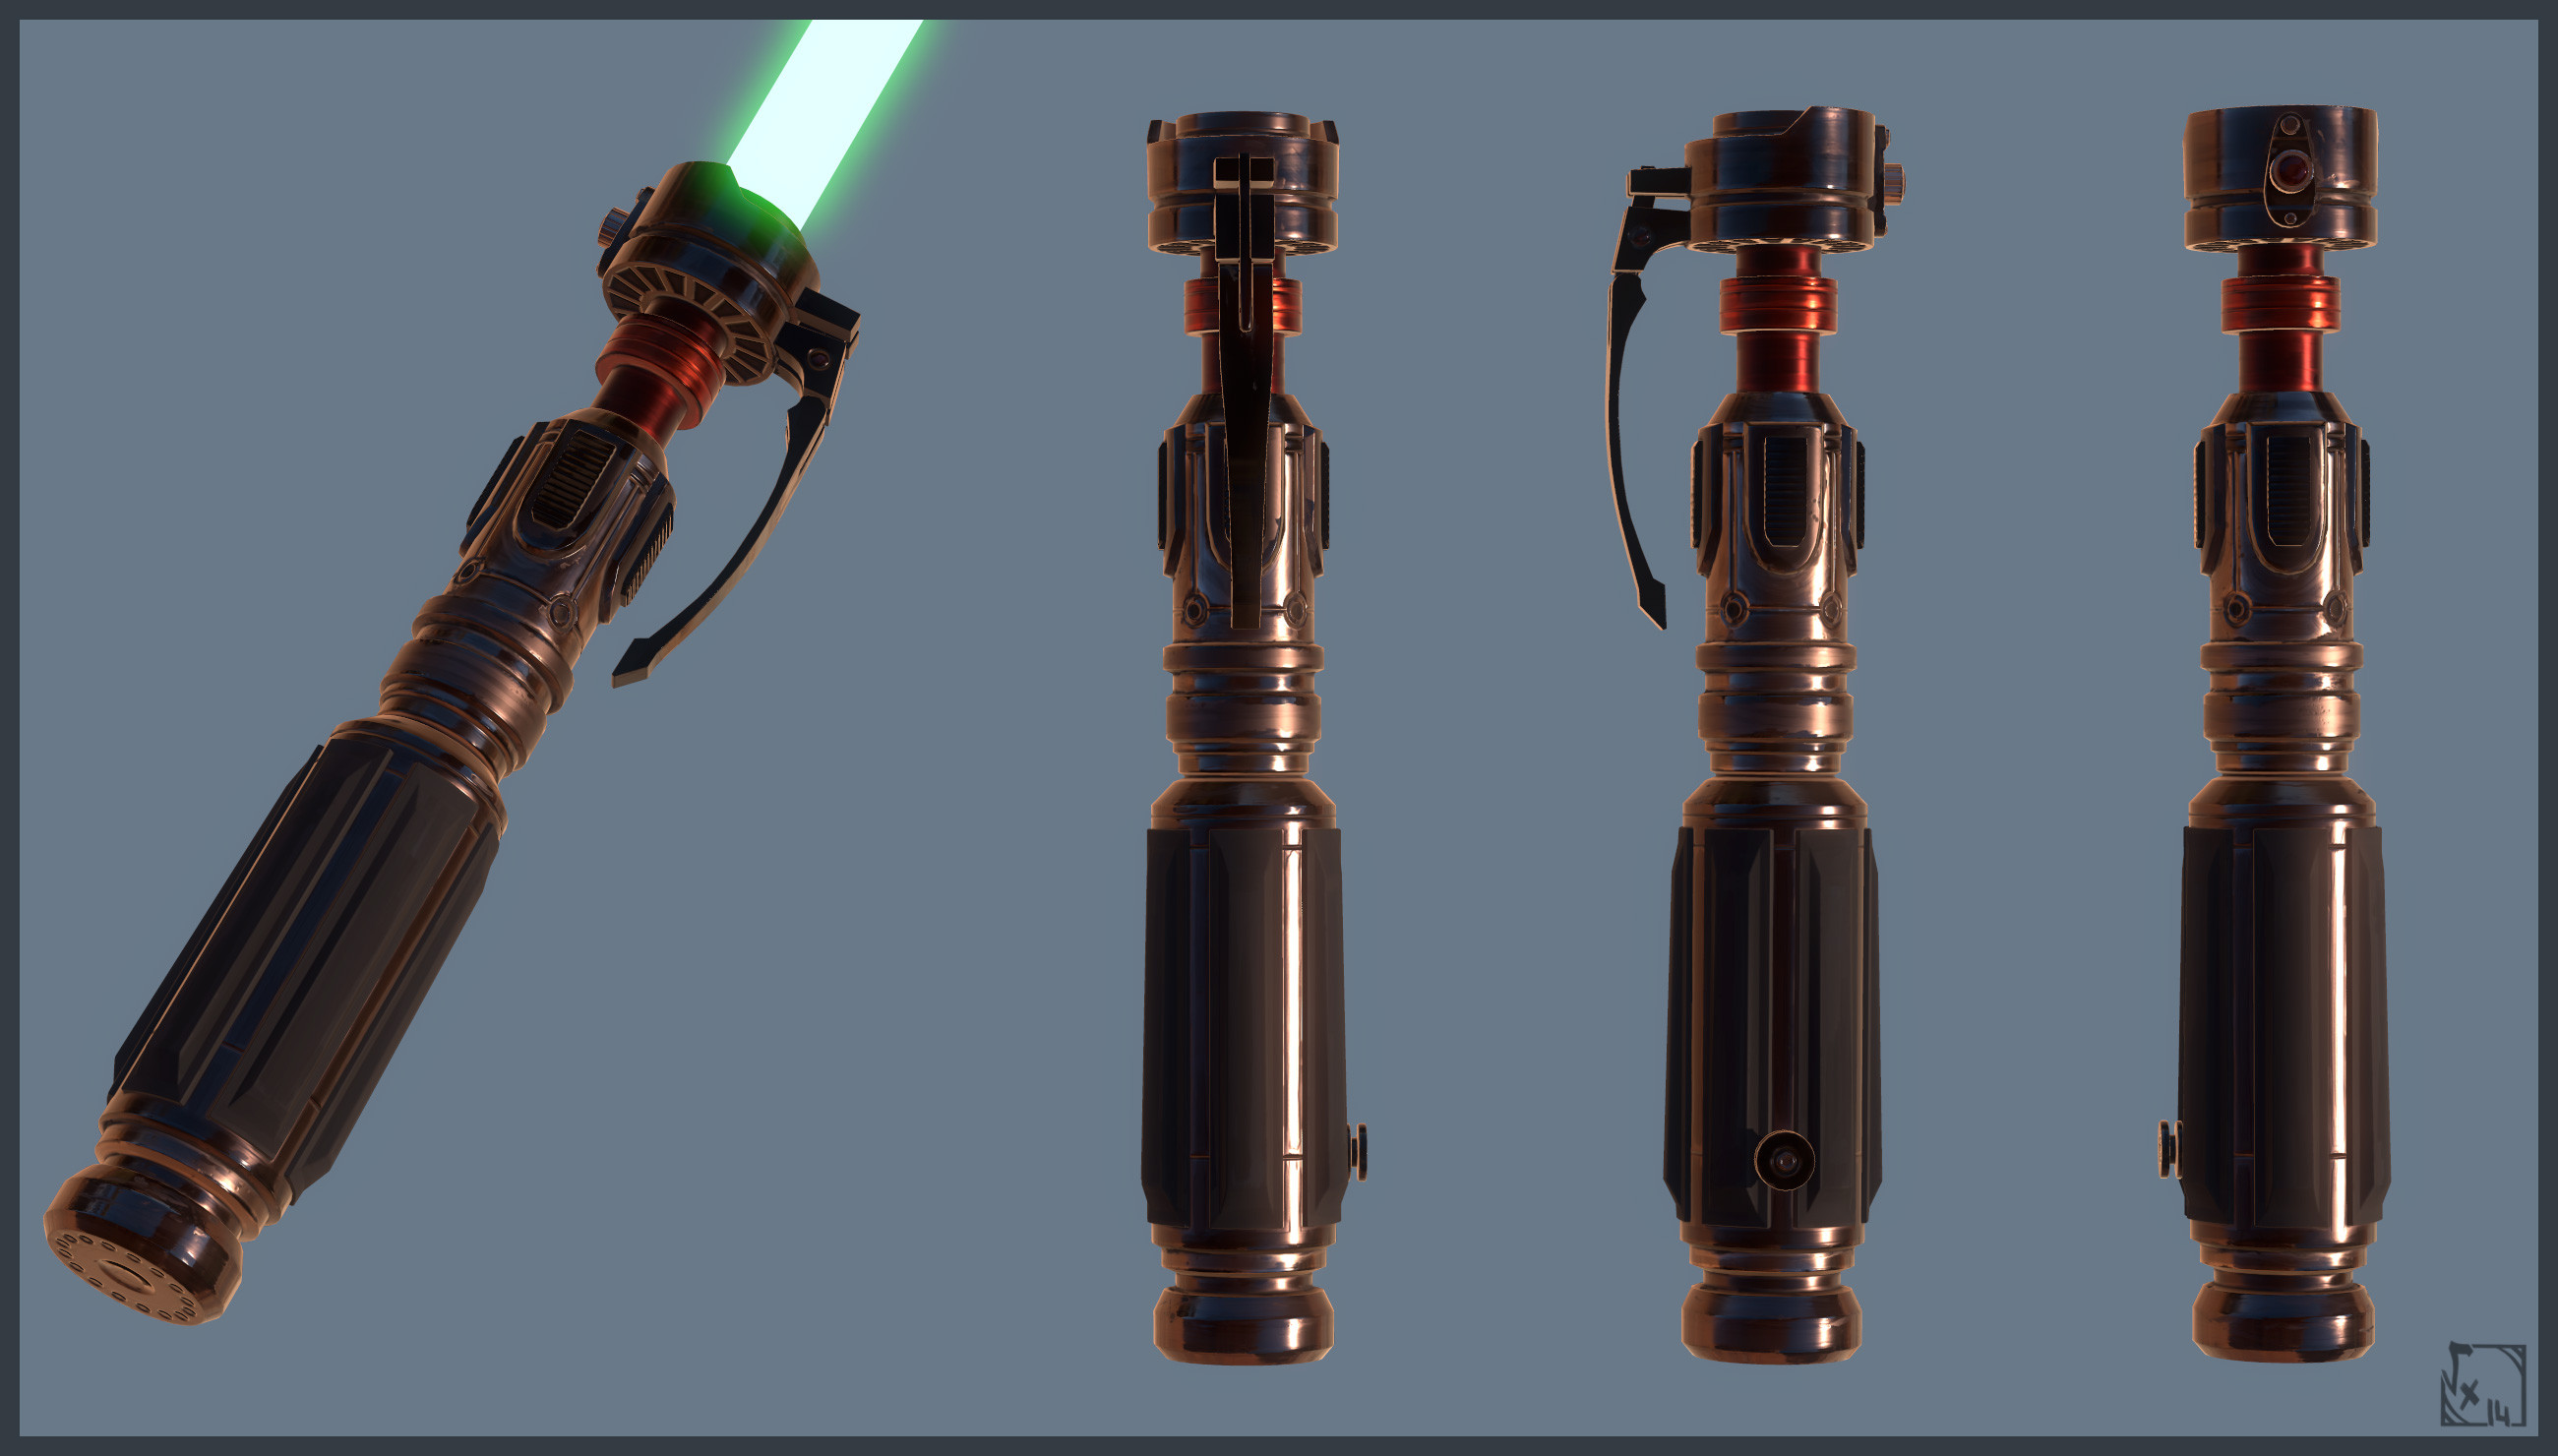 Mevenn's LightSaber - I used 3DCoat but only for the diffuse/AO/Normal map, the rest was done in photoshop & marmoset. Highpoly/Lowpoly/UVs done with 3dsmax/3DCoat 2K PBR Maps ( Diffuse/Roughness/Metalness/AO/Emissive/Normalmap )